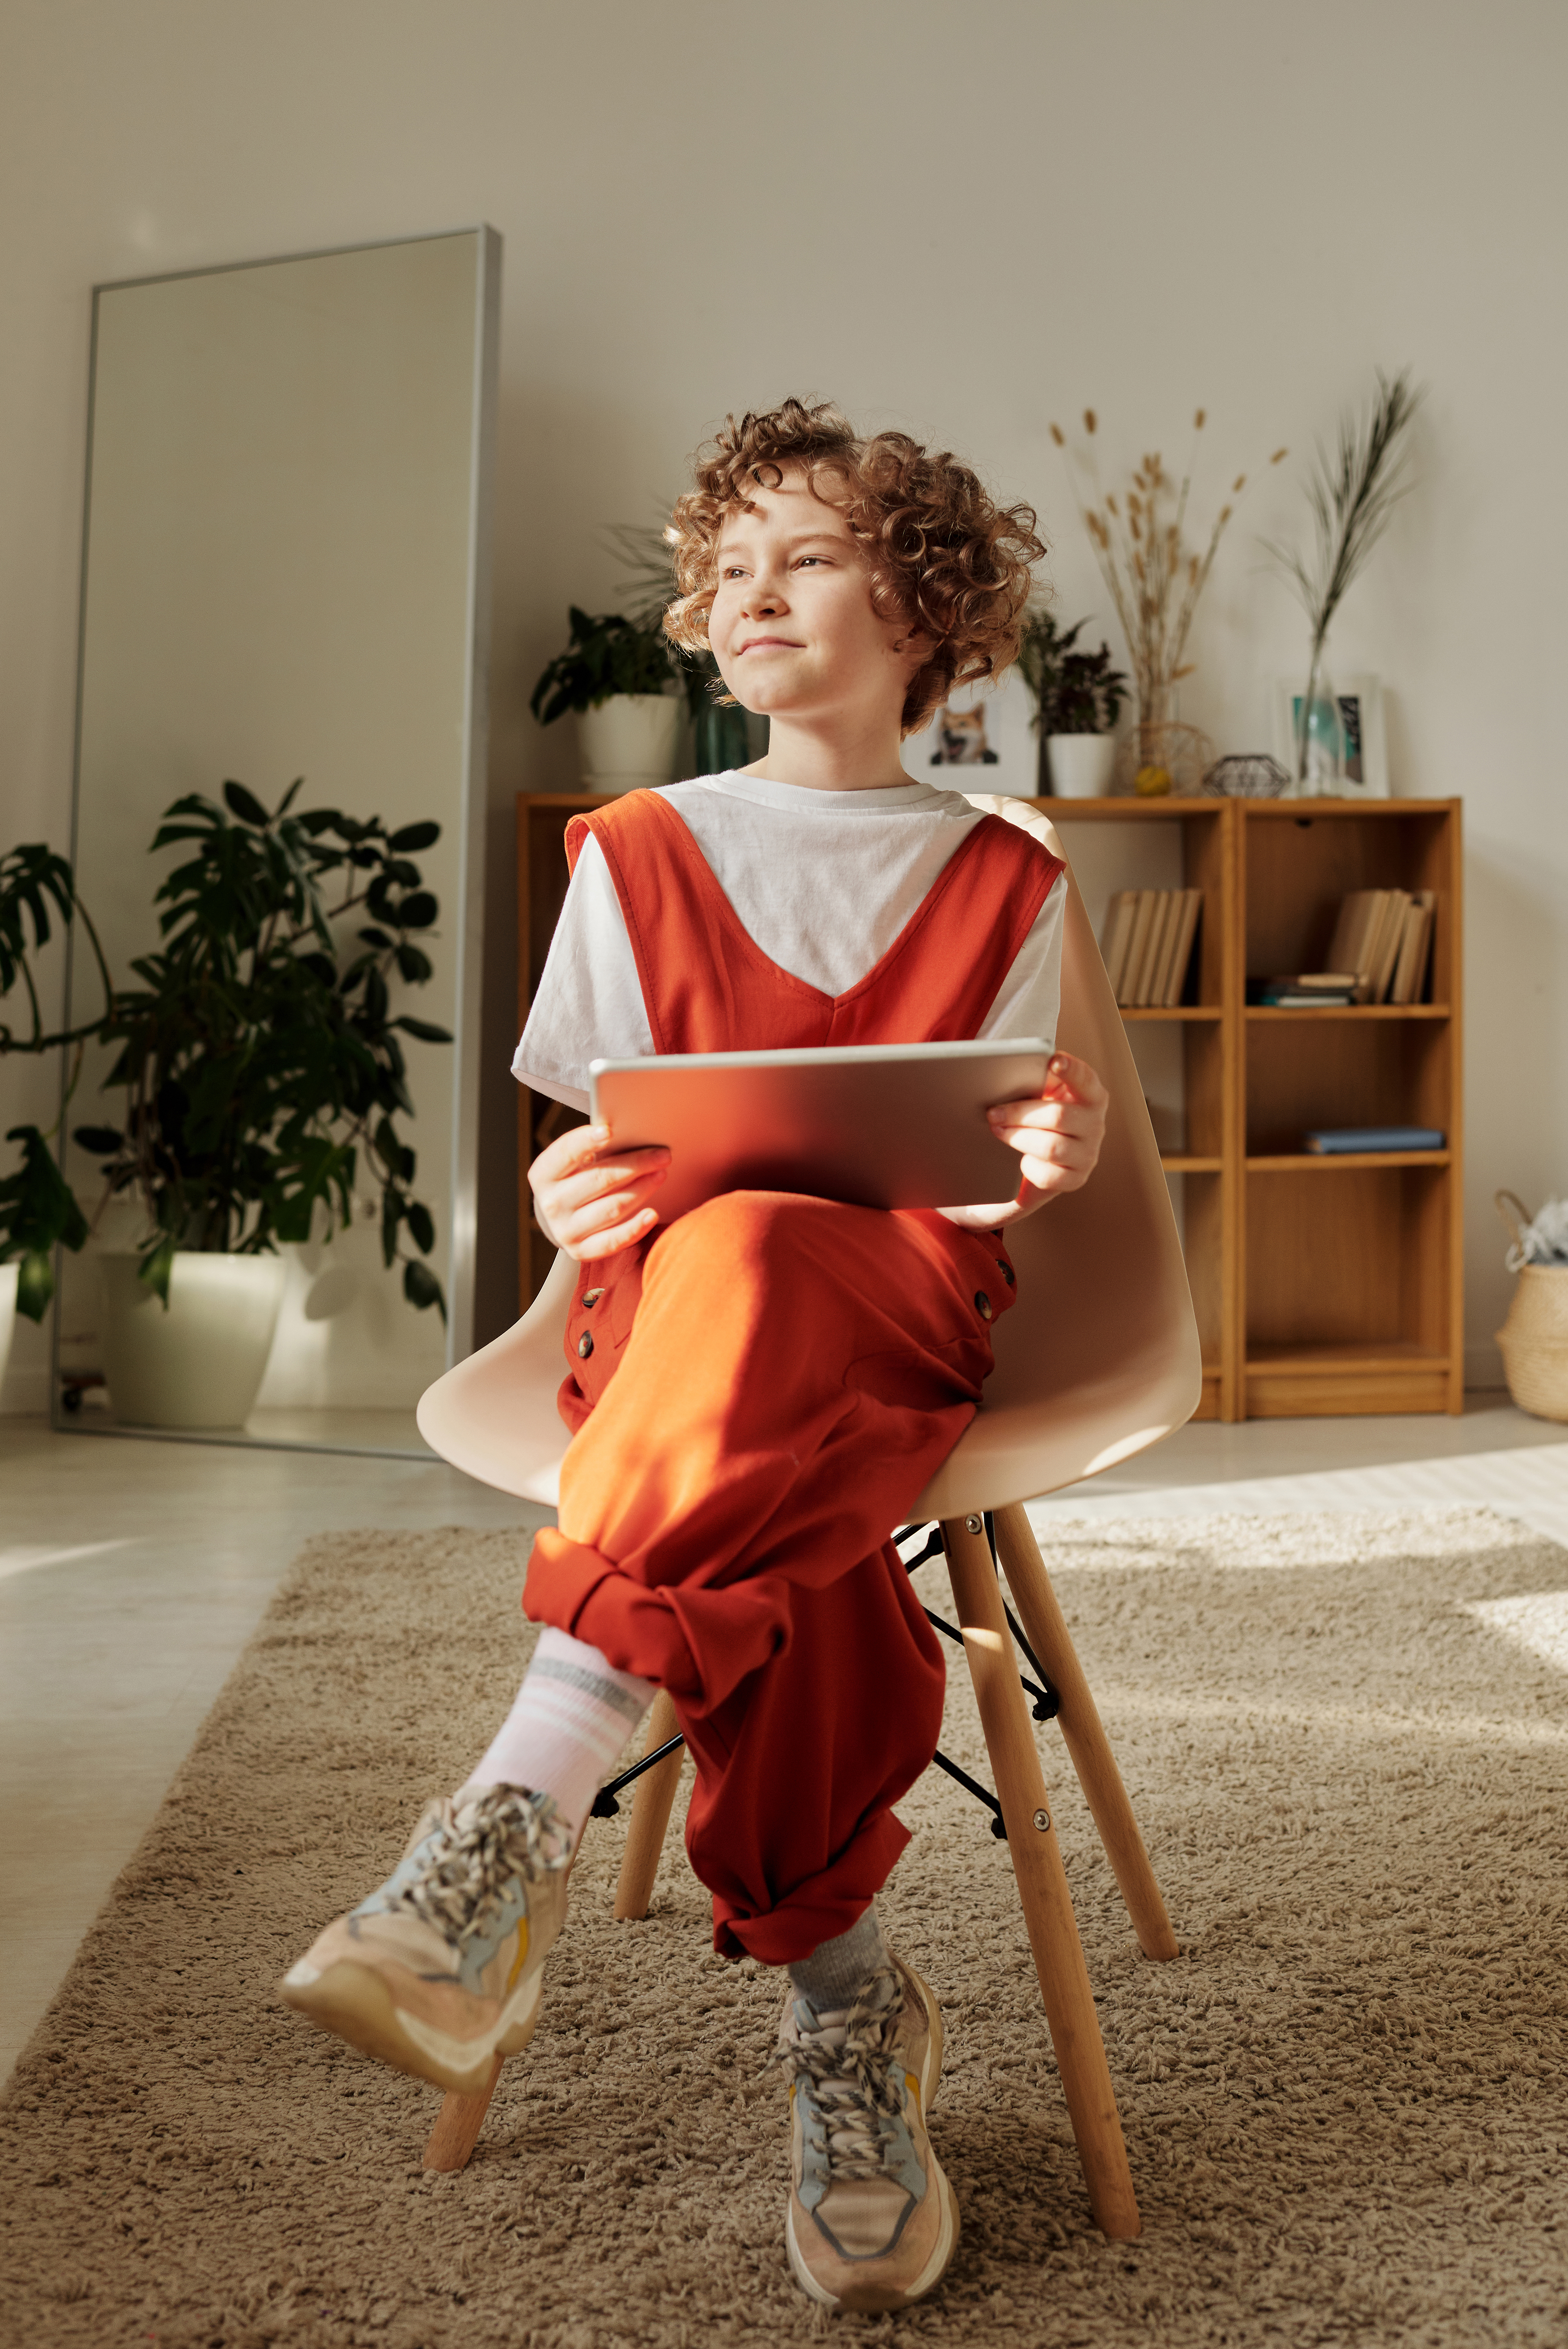 photo of child sitting on chair while holding tablet